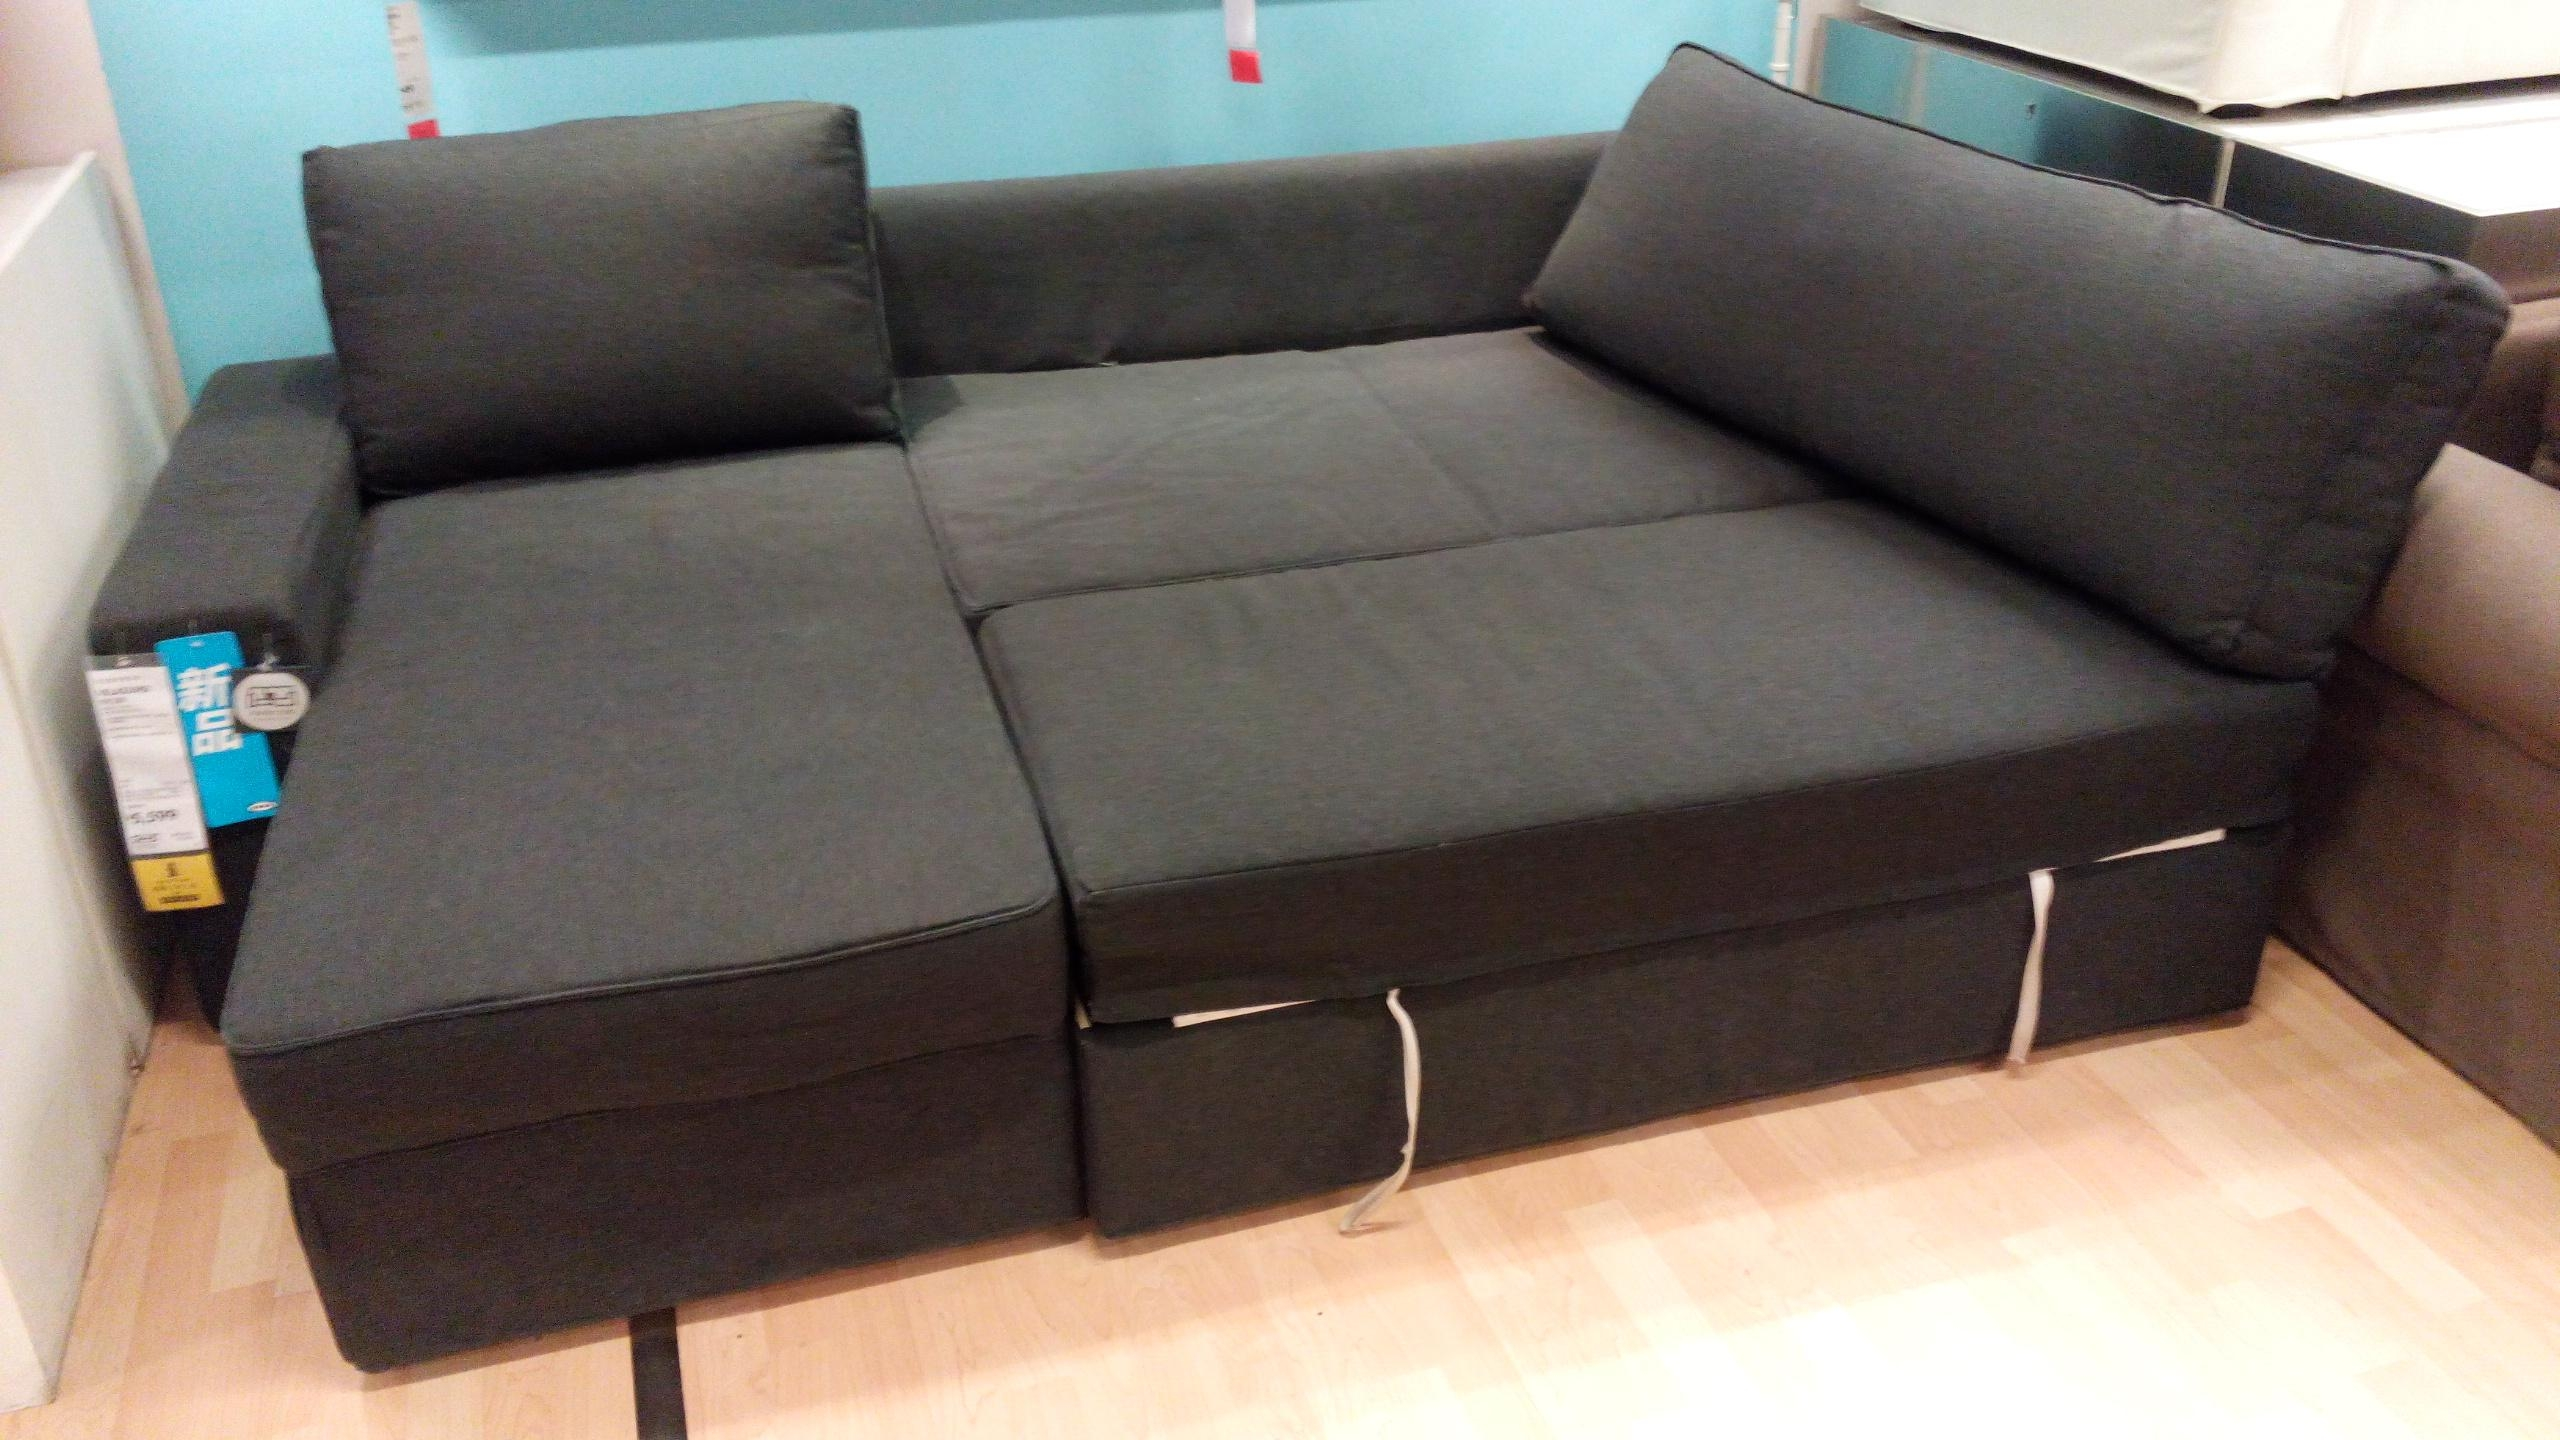 Ikea Vilasund And Backabro Review – Return Of The Sofa Bed Clones! Pertaining To Ikea Chaise Lounge Sofa (View 17 of 20)